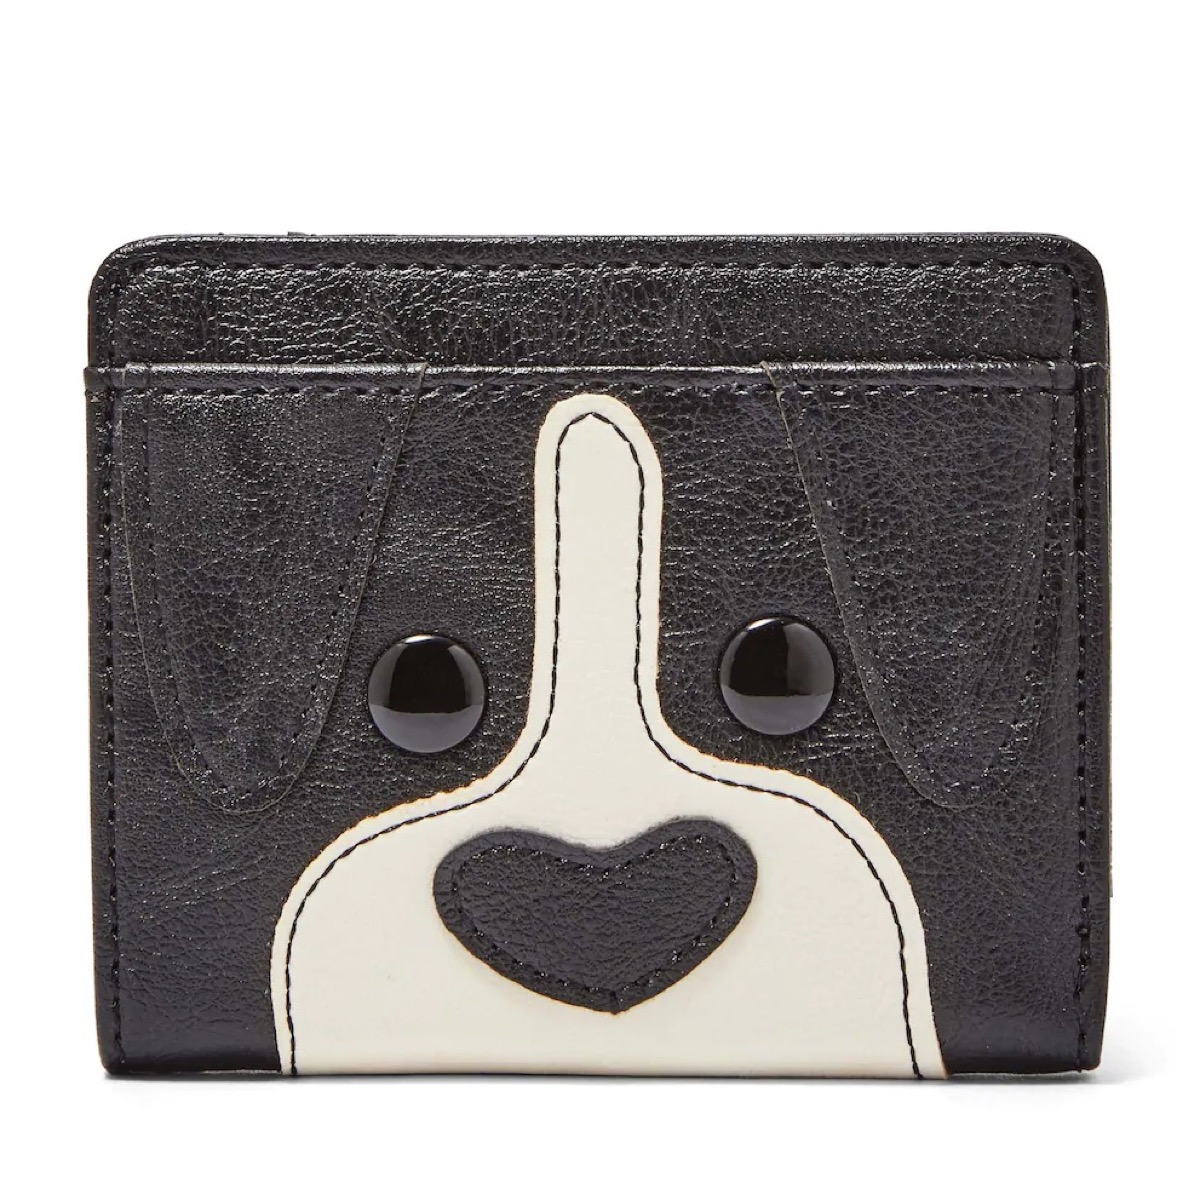 JCPenney dog bifold wallet